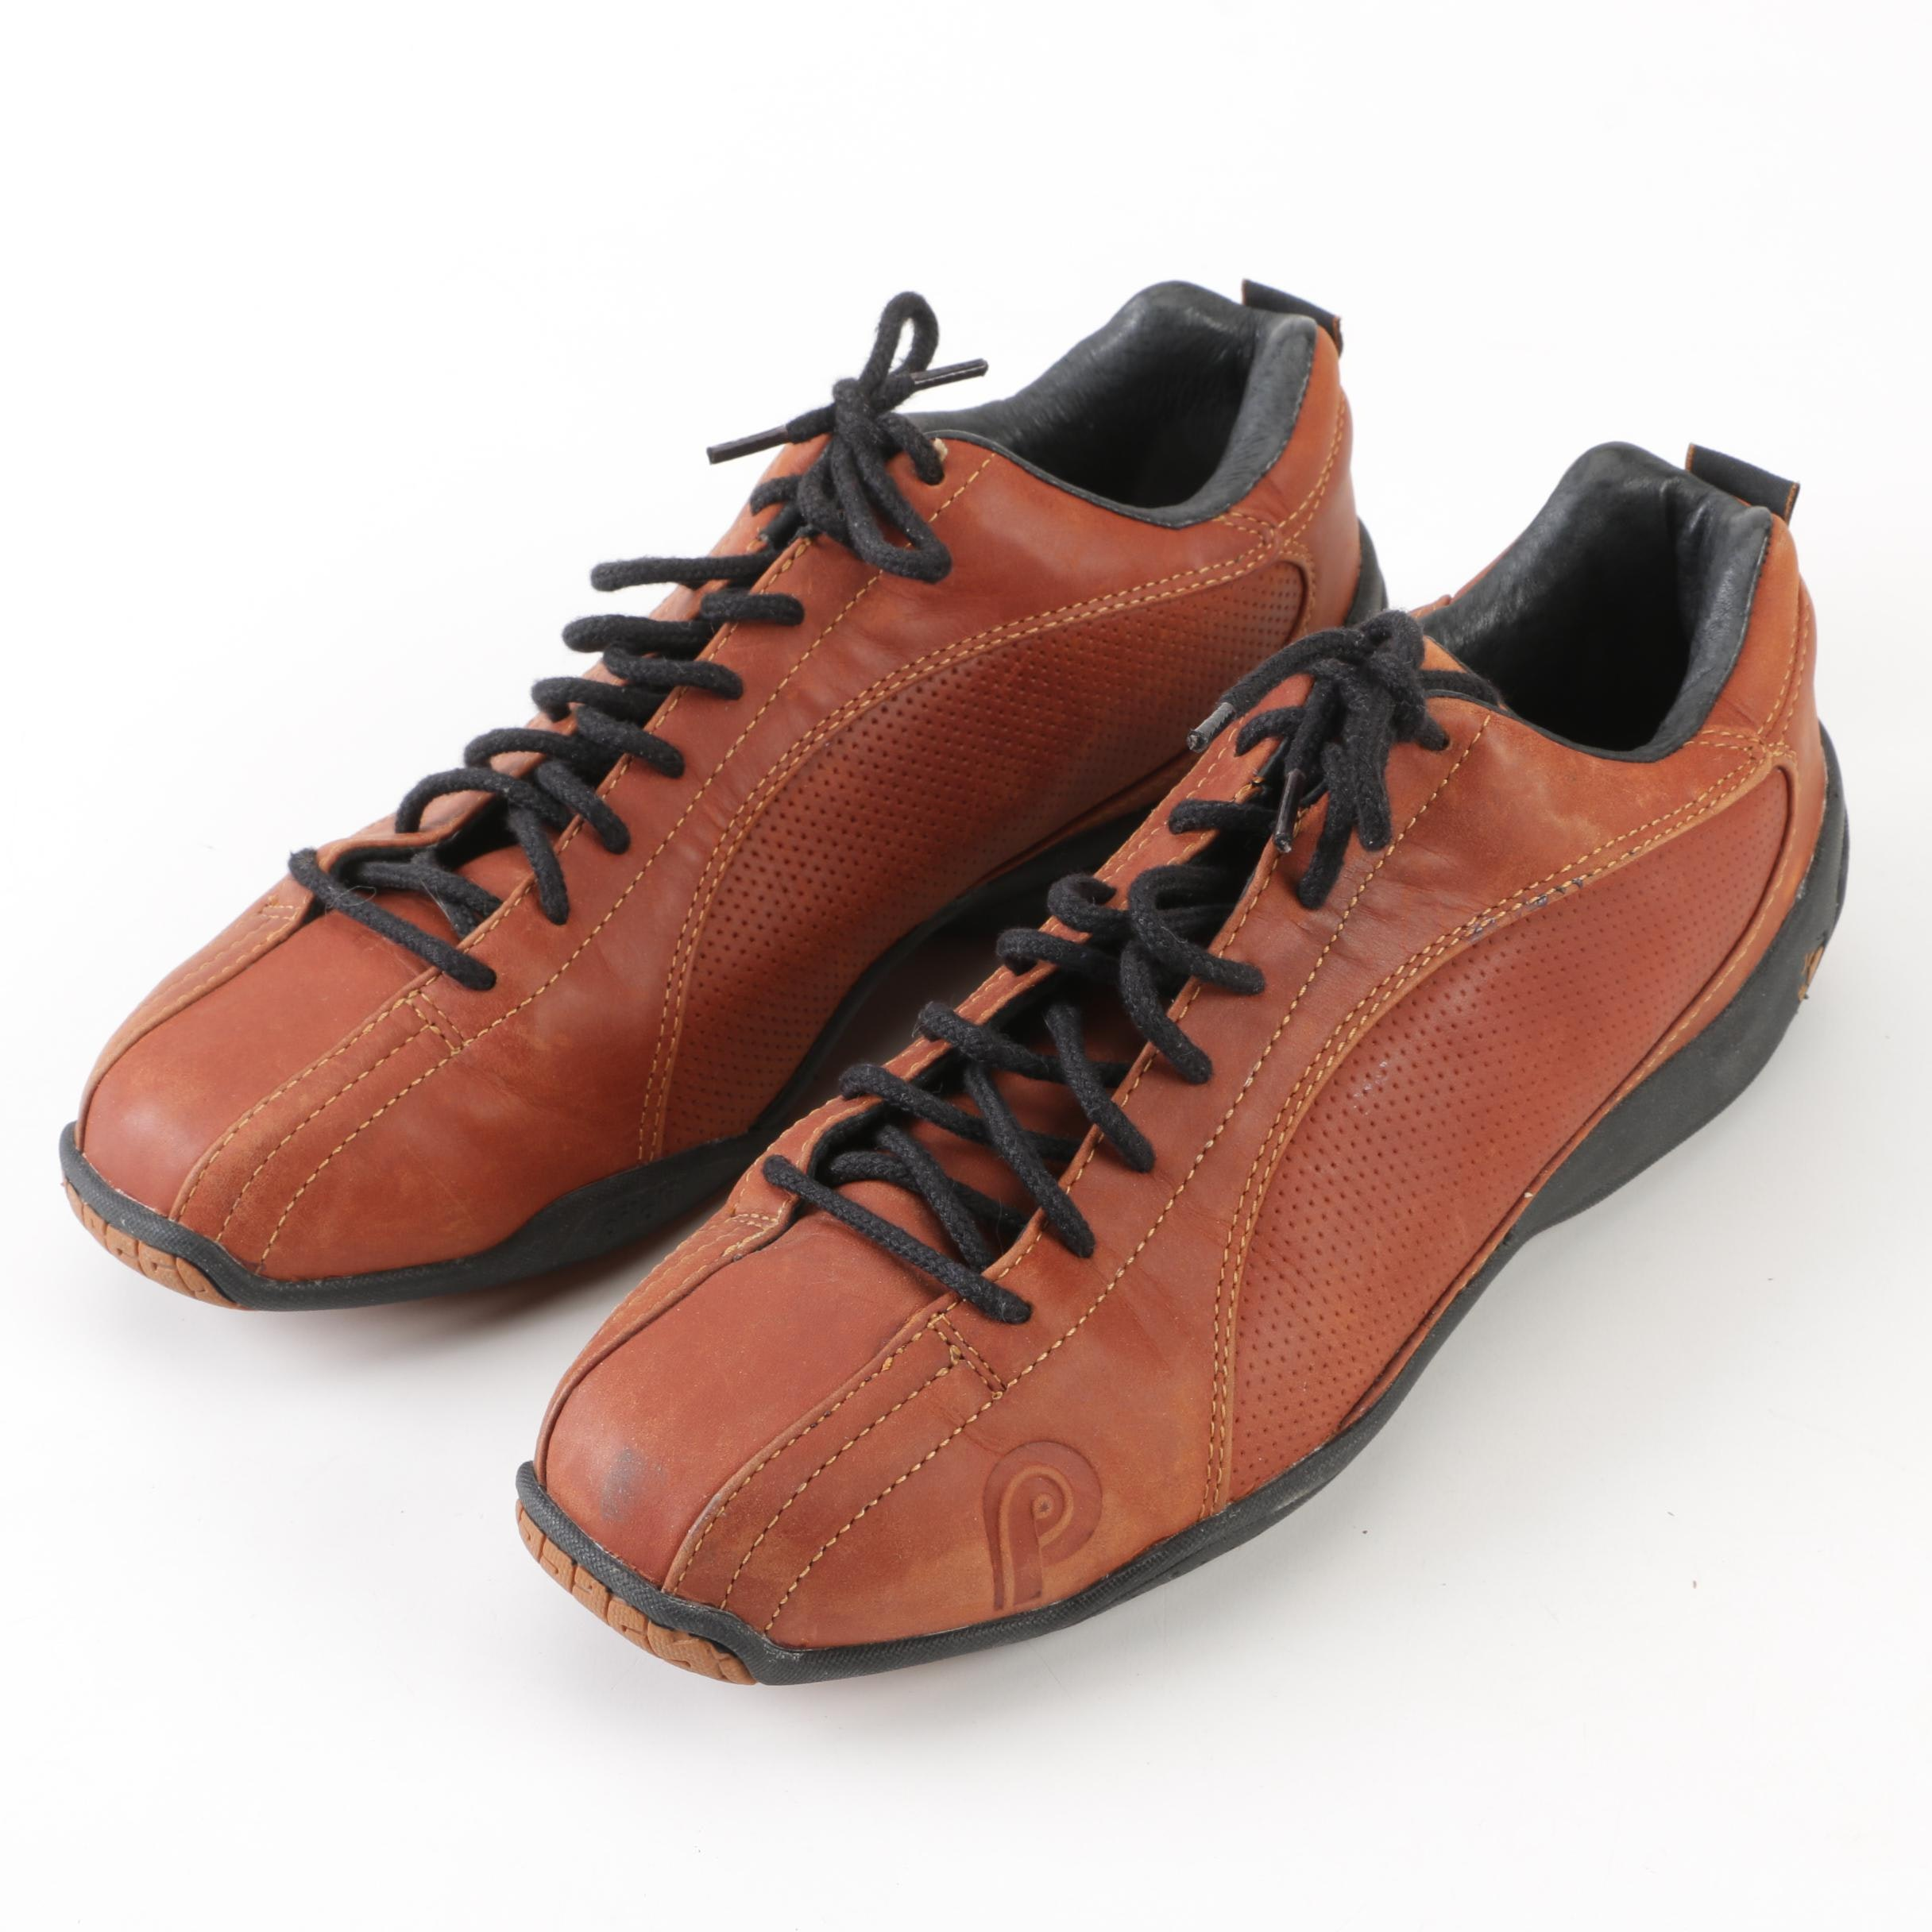 Piloti Sebring Brown Leather Lace-Up Shoes